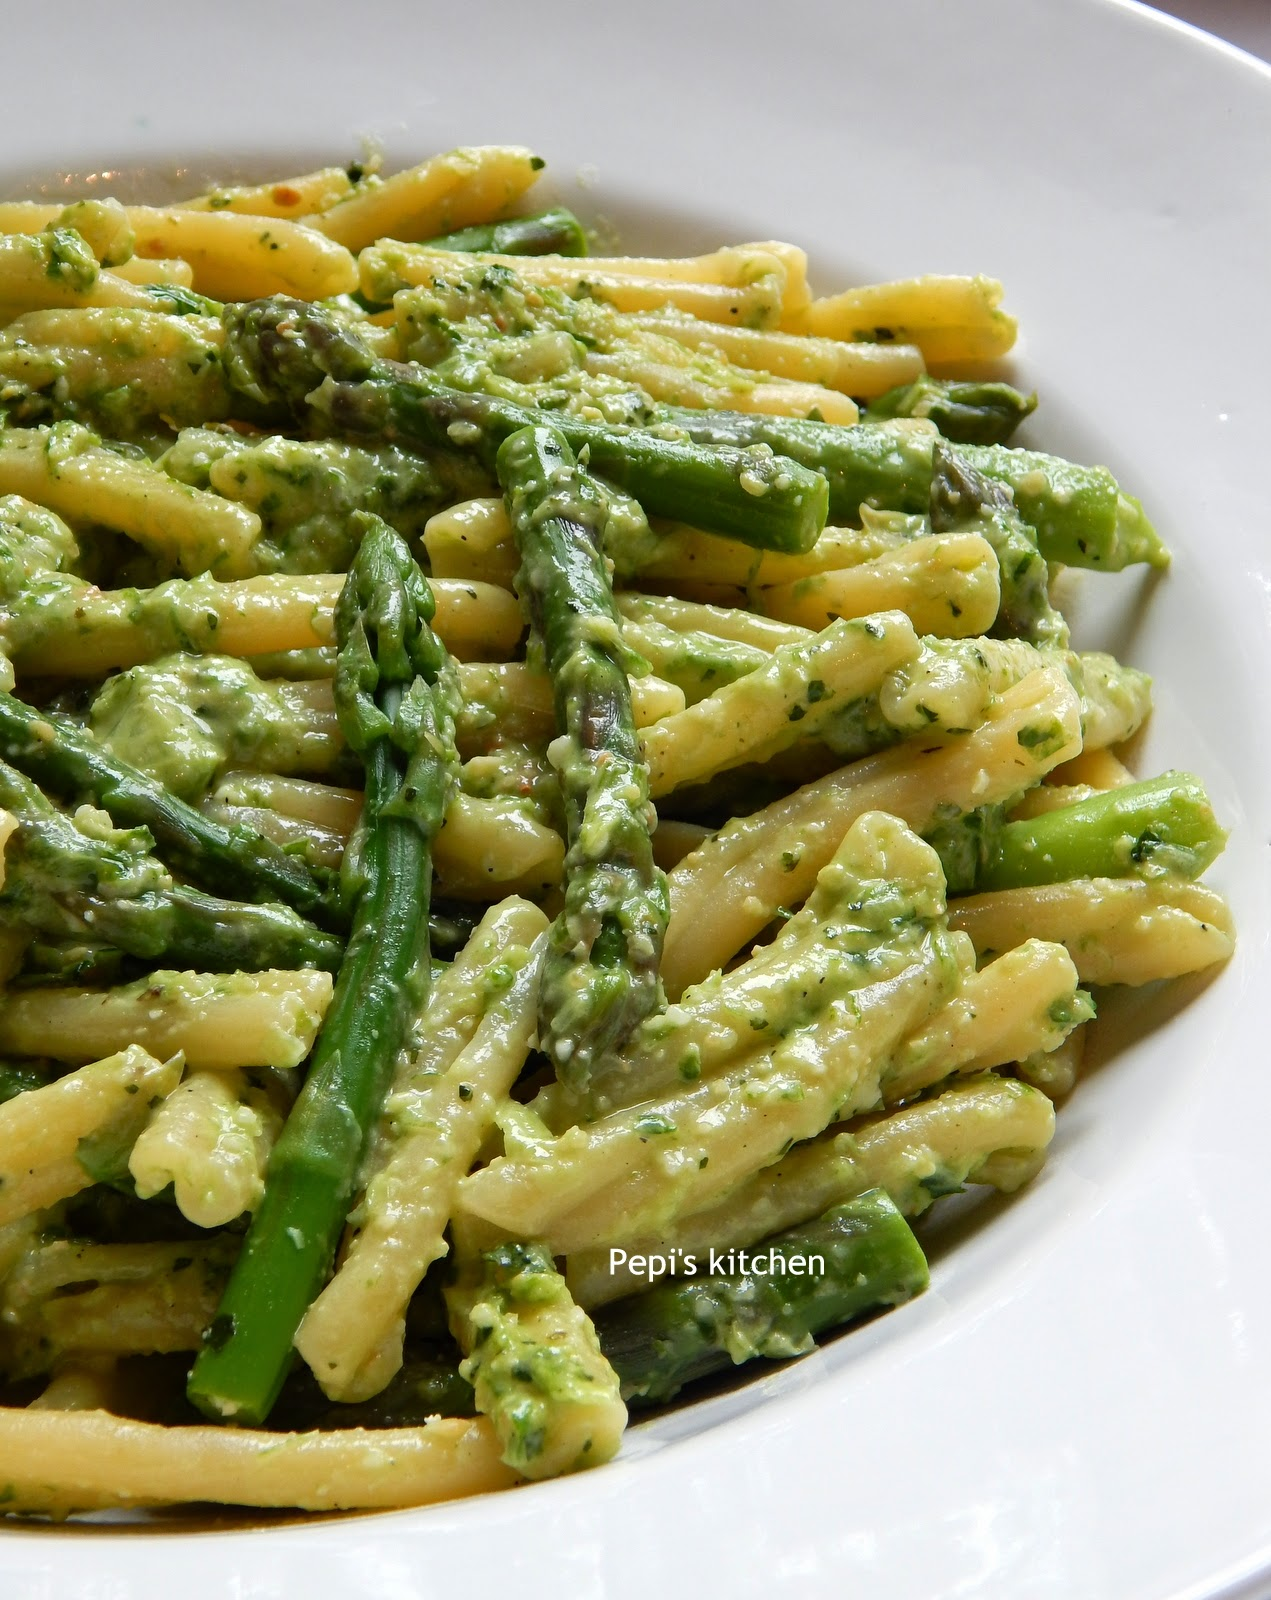 Pepi's kitchen in english: Pasta with Asparagus and Spearmint Pesto